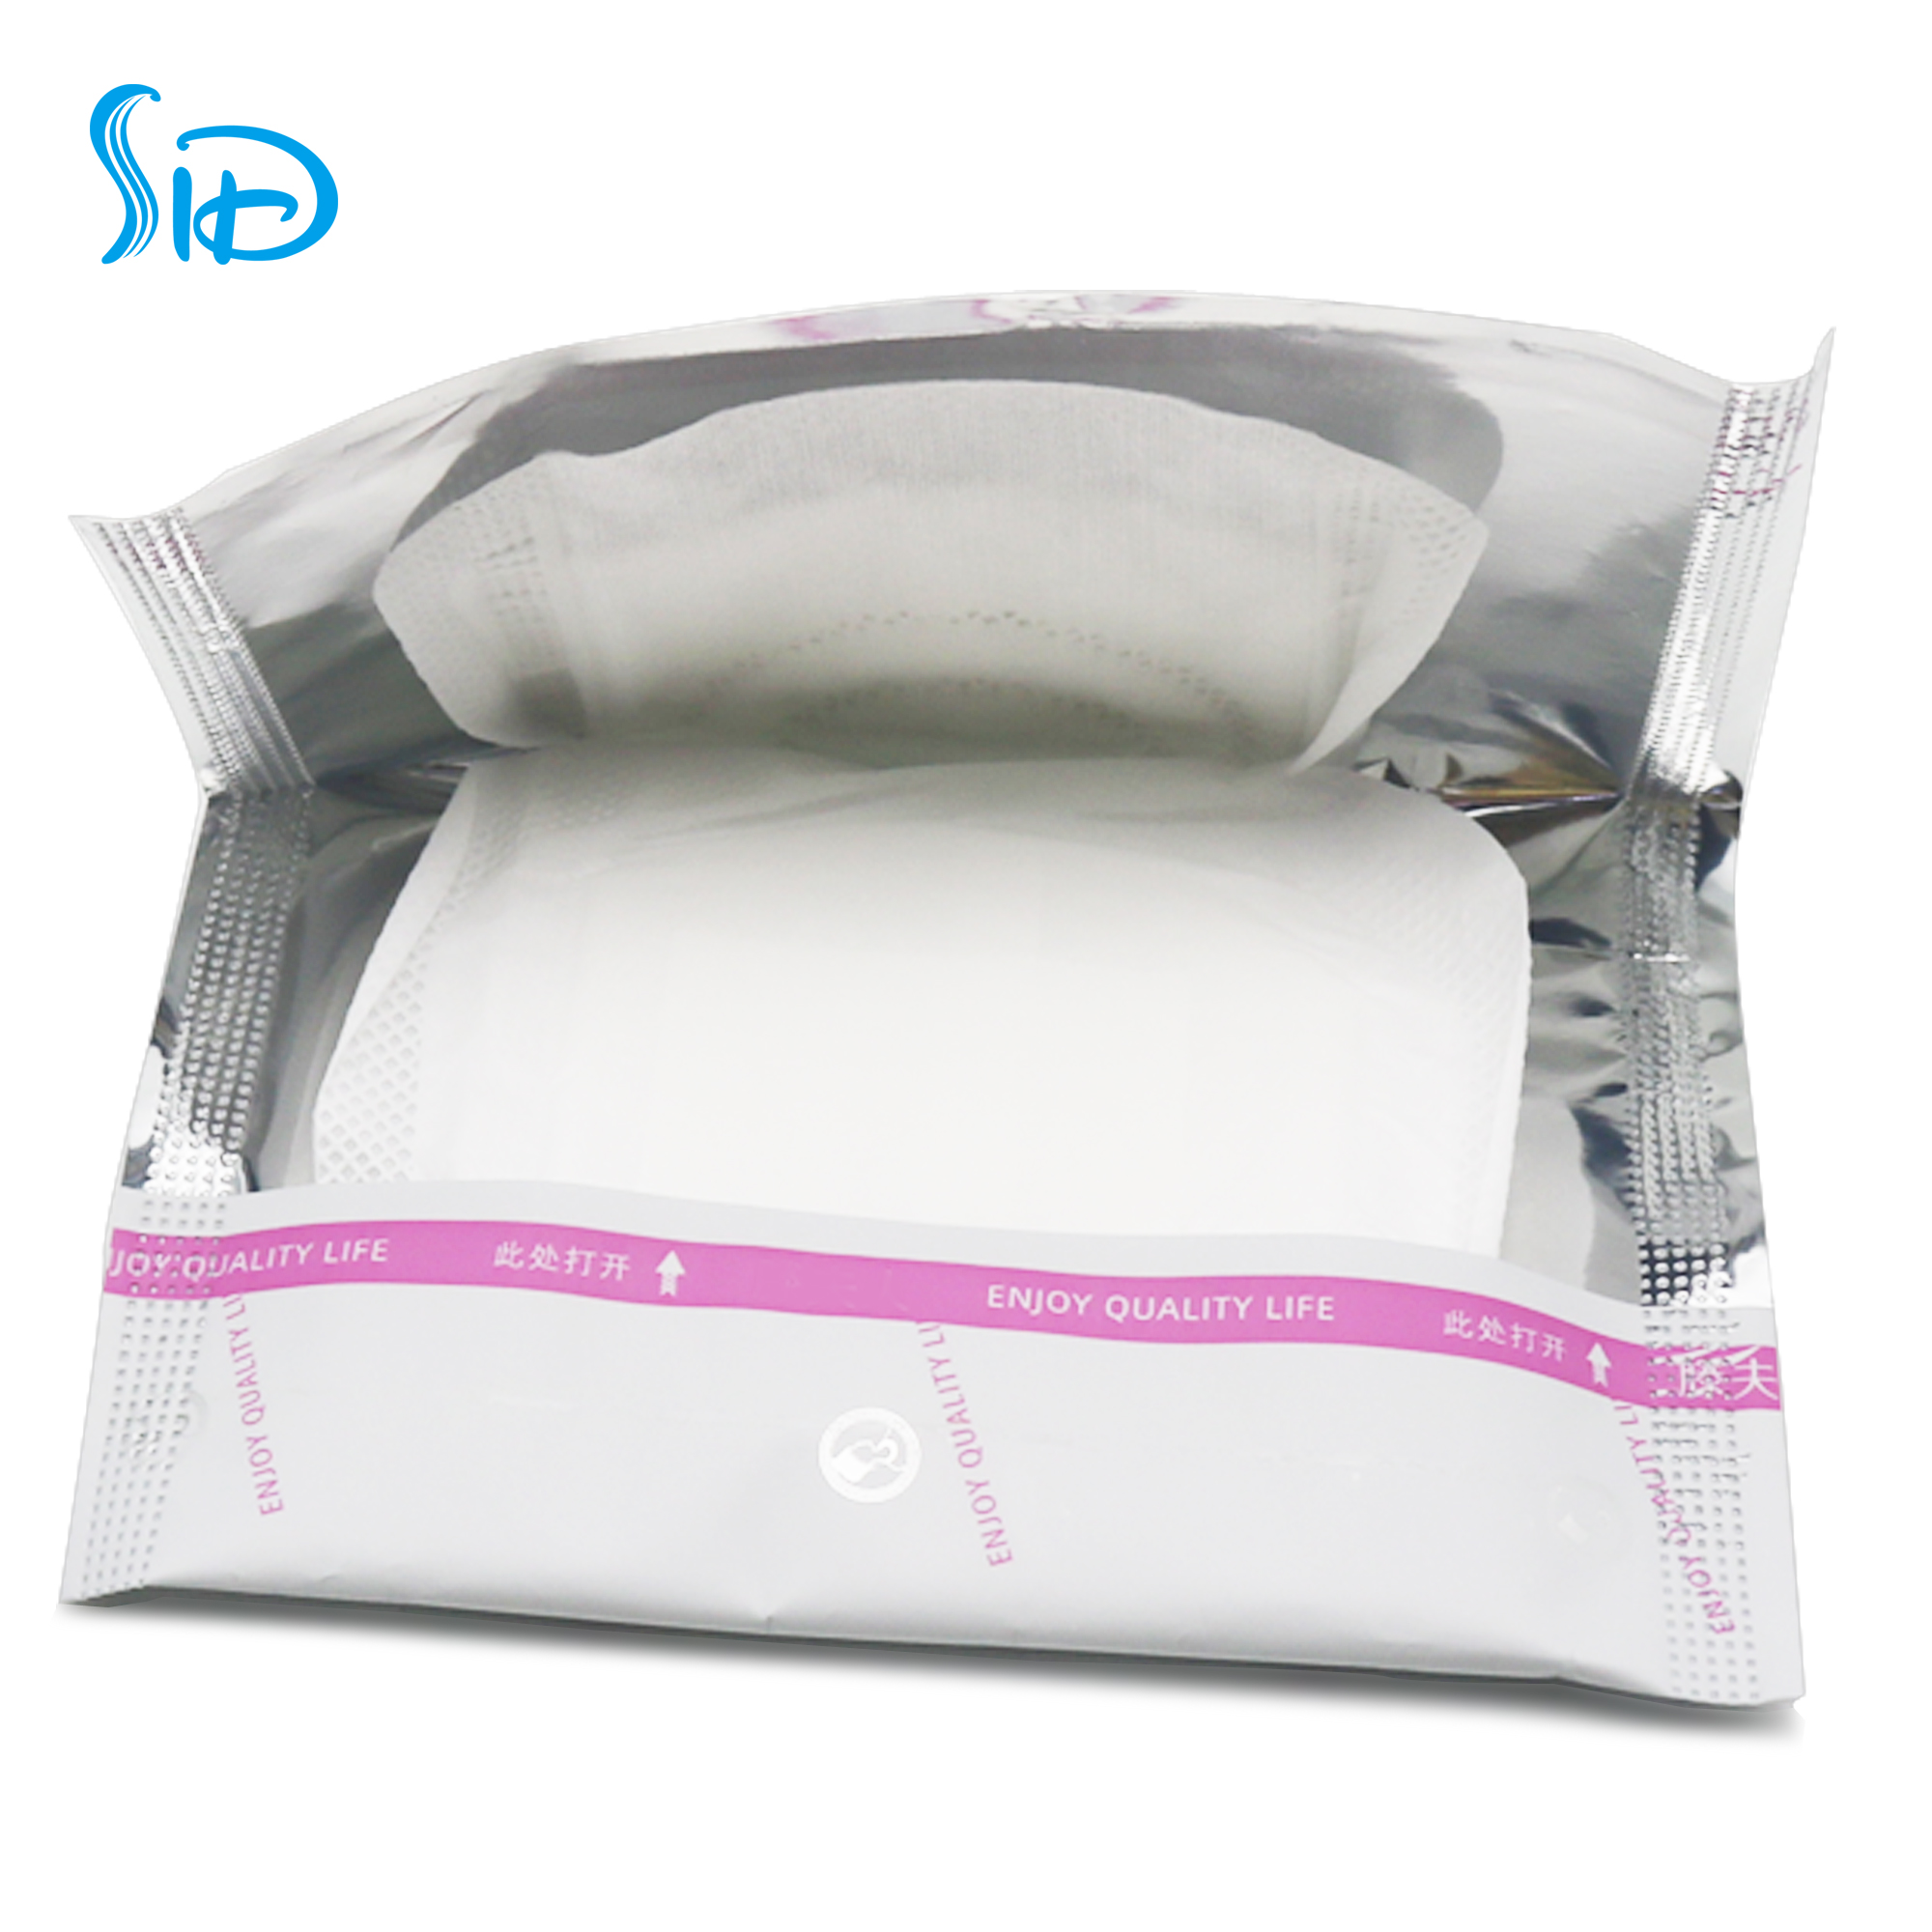 Safe sanitary napkins for menstrual products